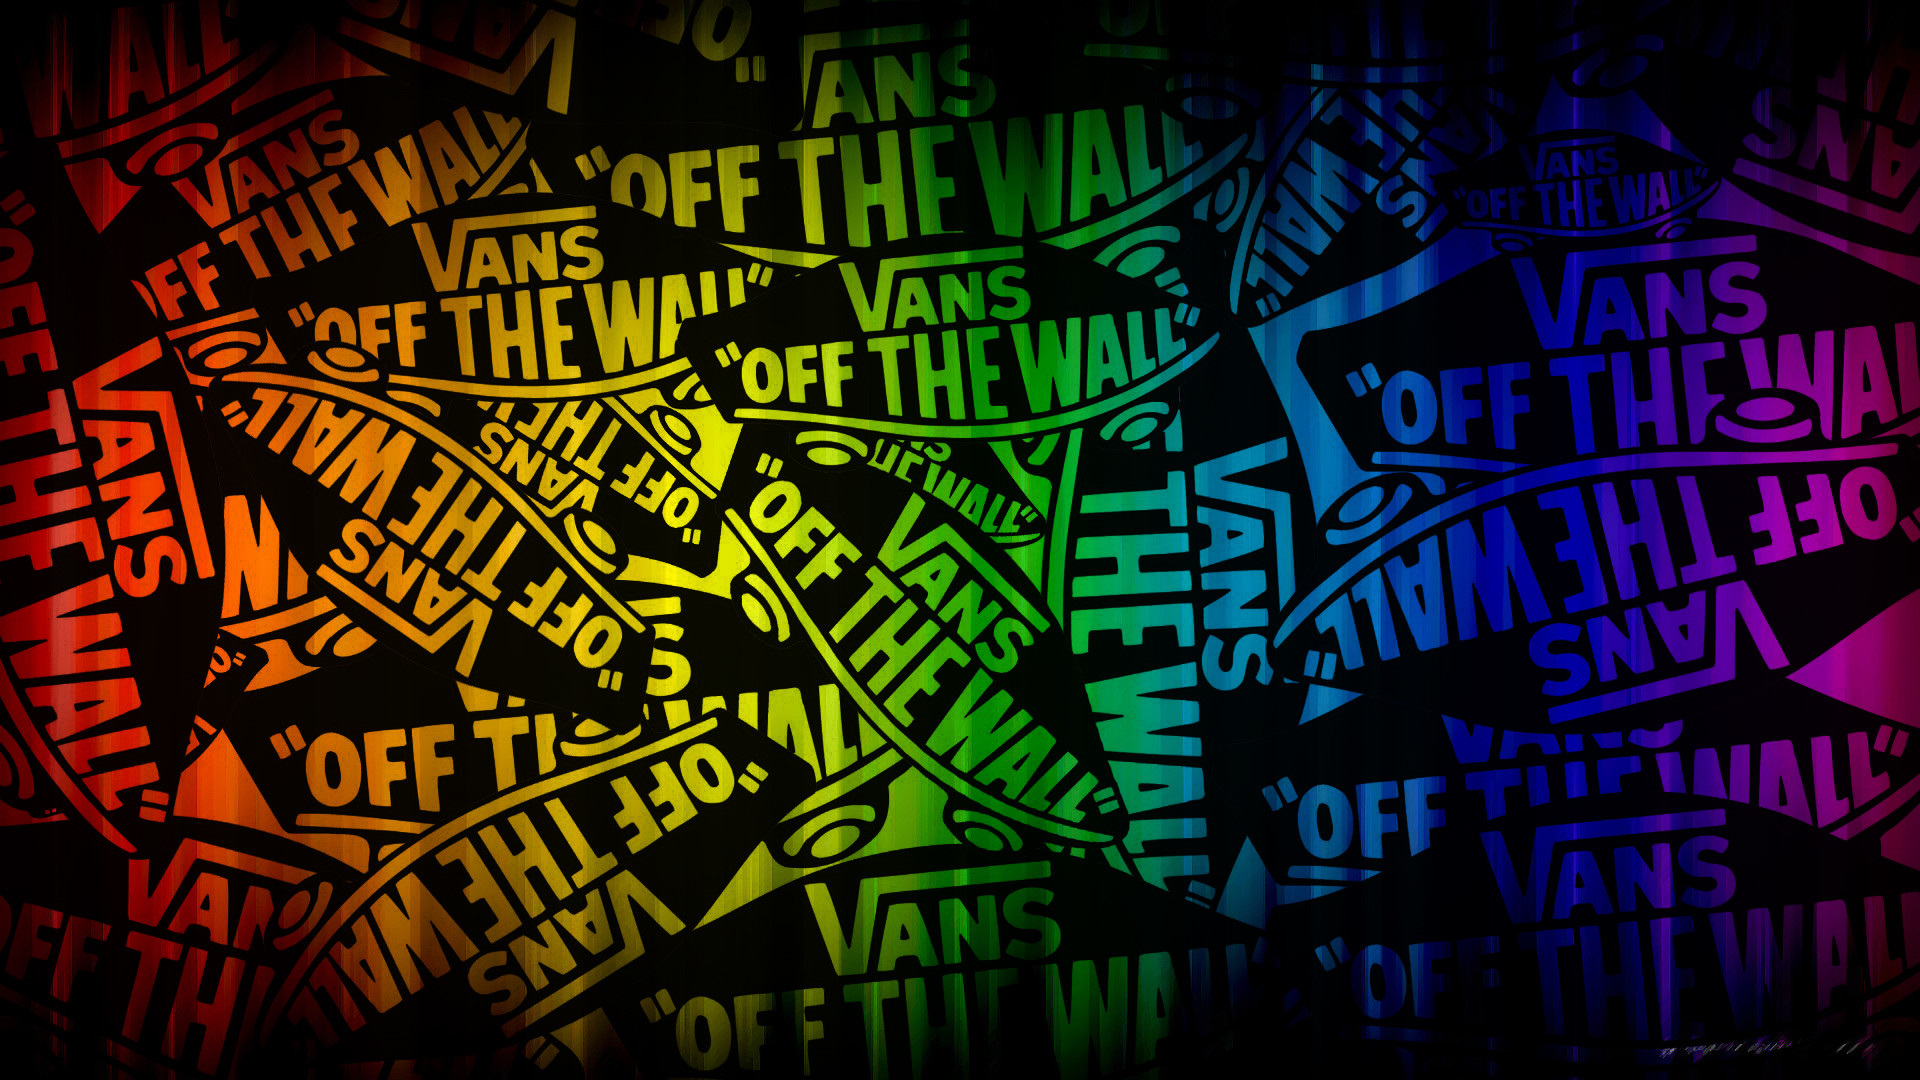 Res: 1920x1080, Related Wallpapers from Cool Spiderman Logo Wallpaper. Vans Wallpaper